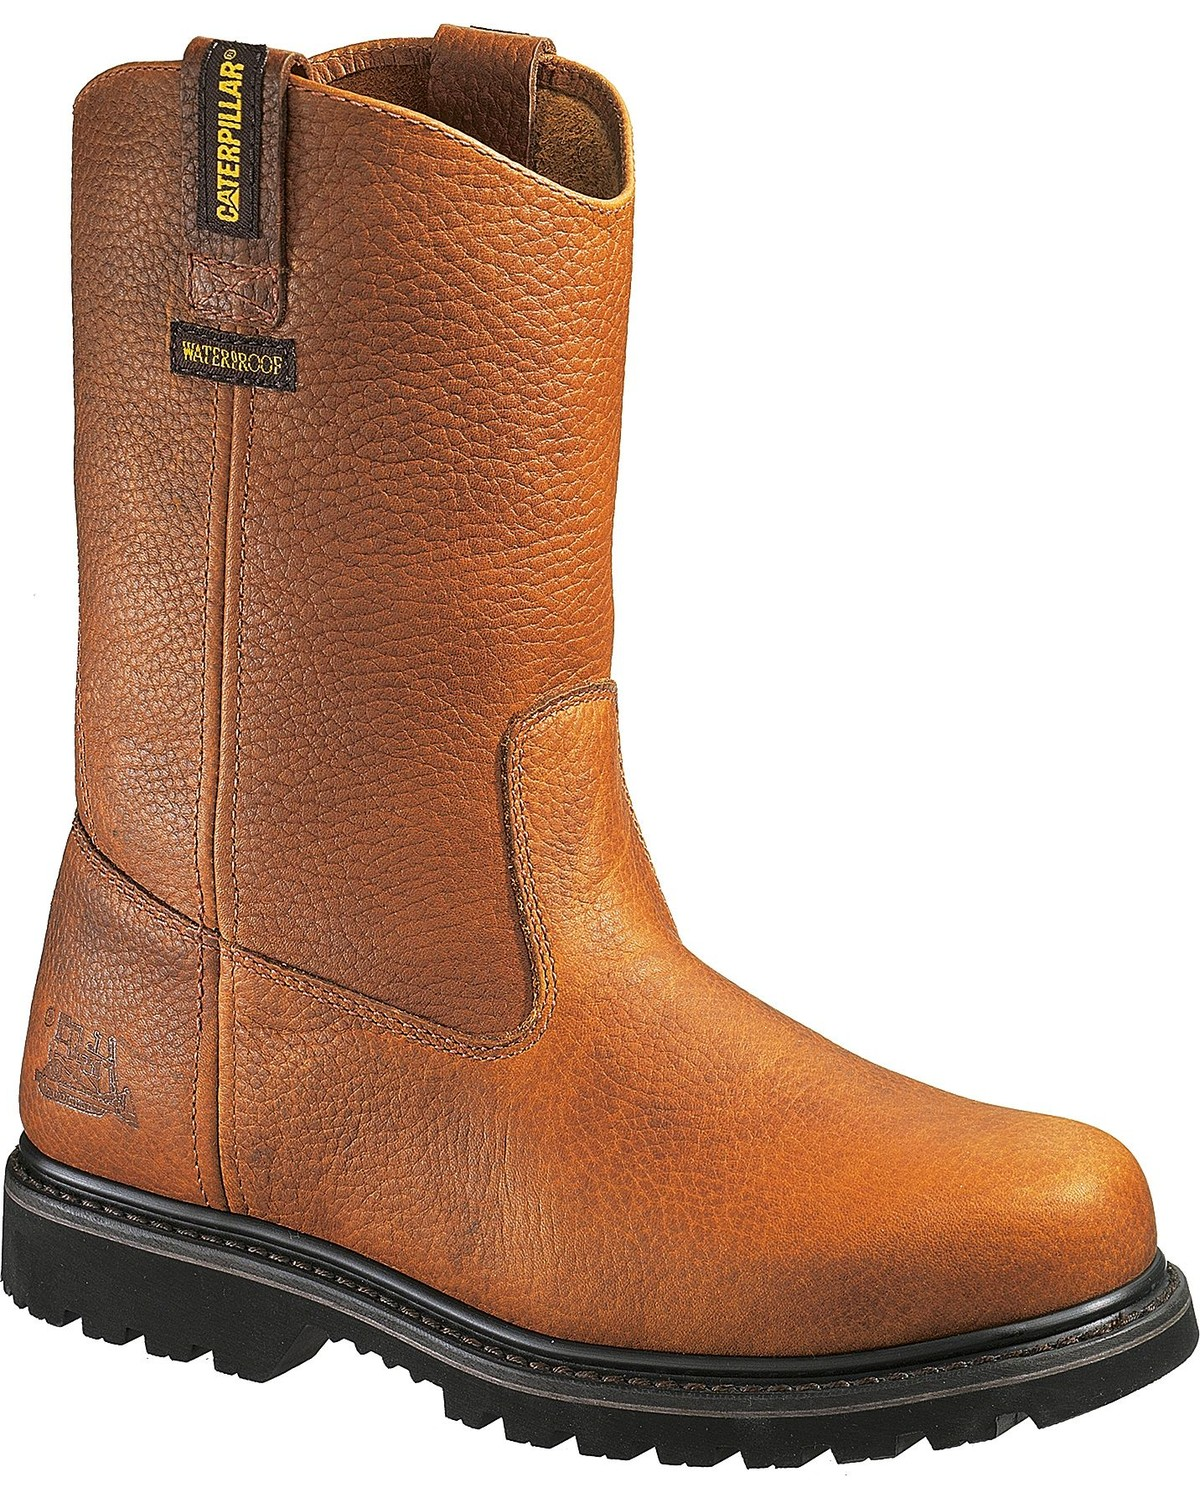 c71520c6330 CAT Men's Edgework Waterproof Steel Toe Work Boots